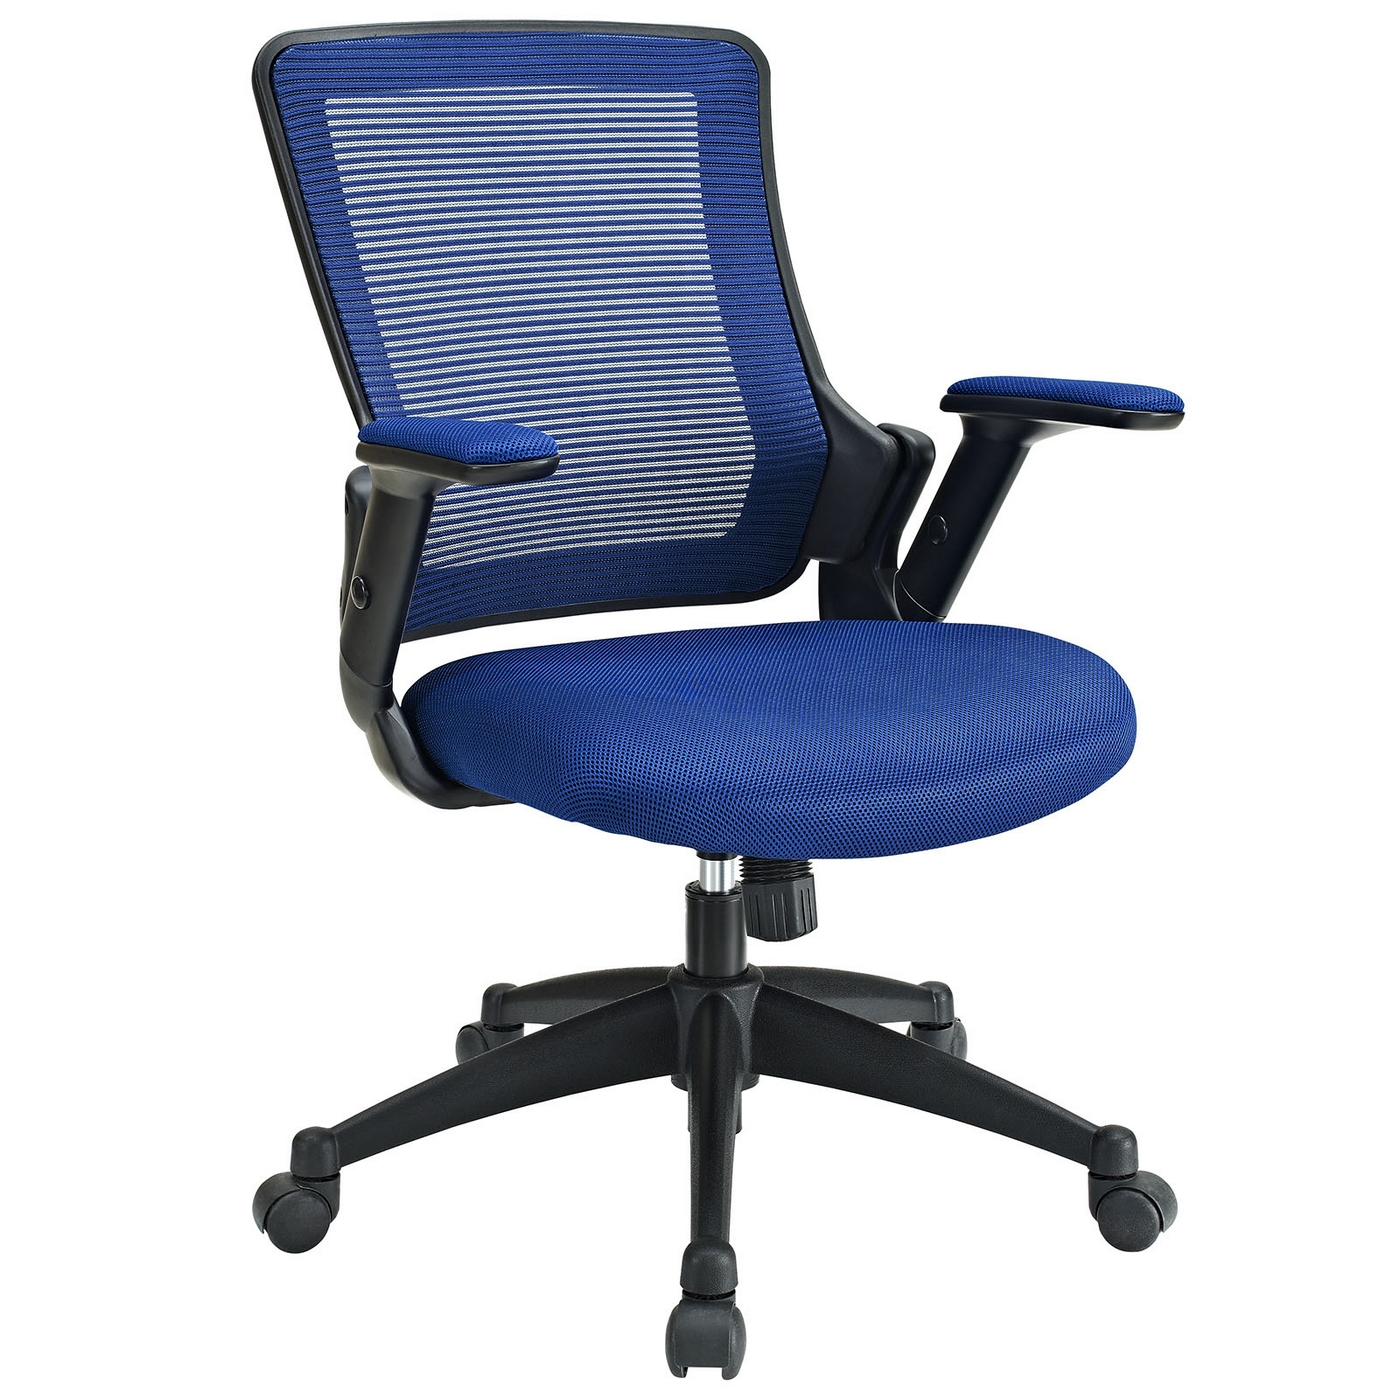 Ergonomic Mesh Chair Aspire Contemporary Ergonomic Mesh Multi Function Office